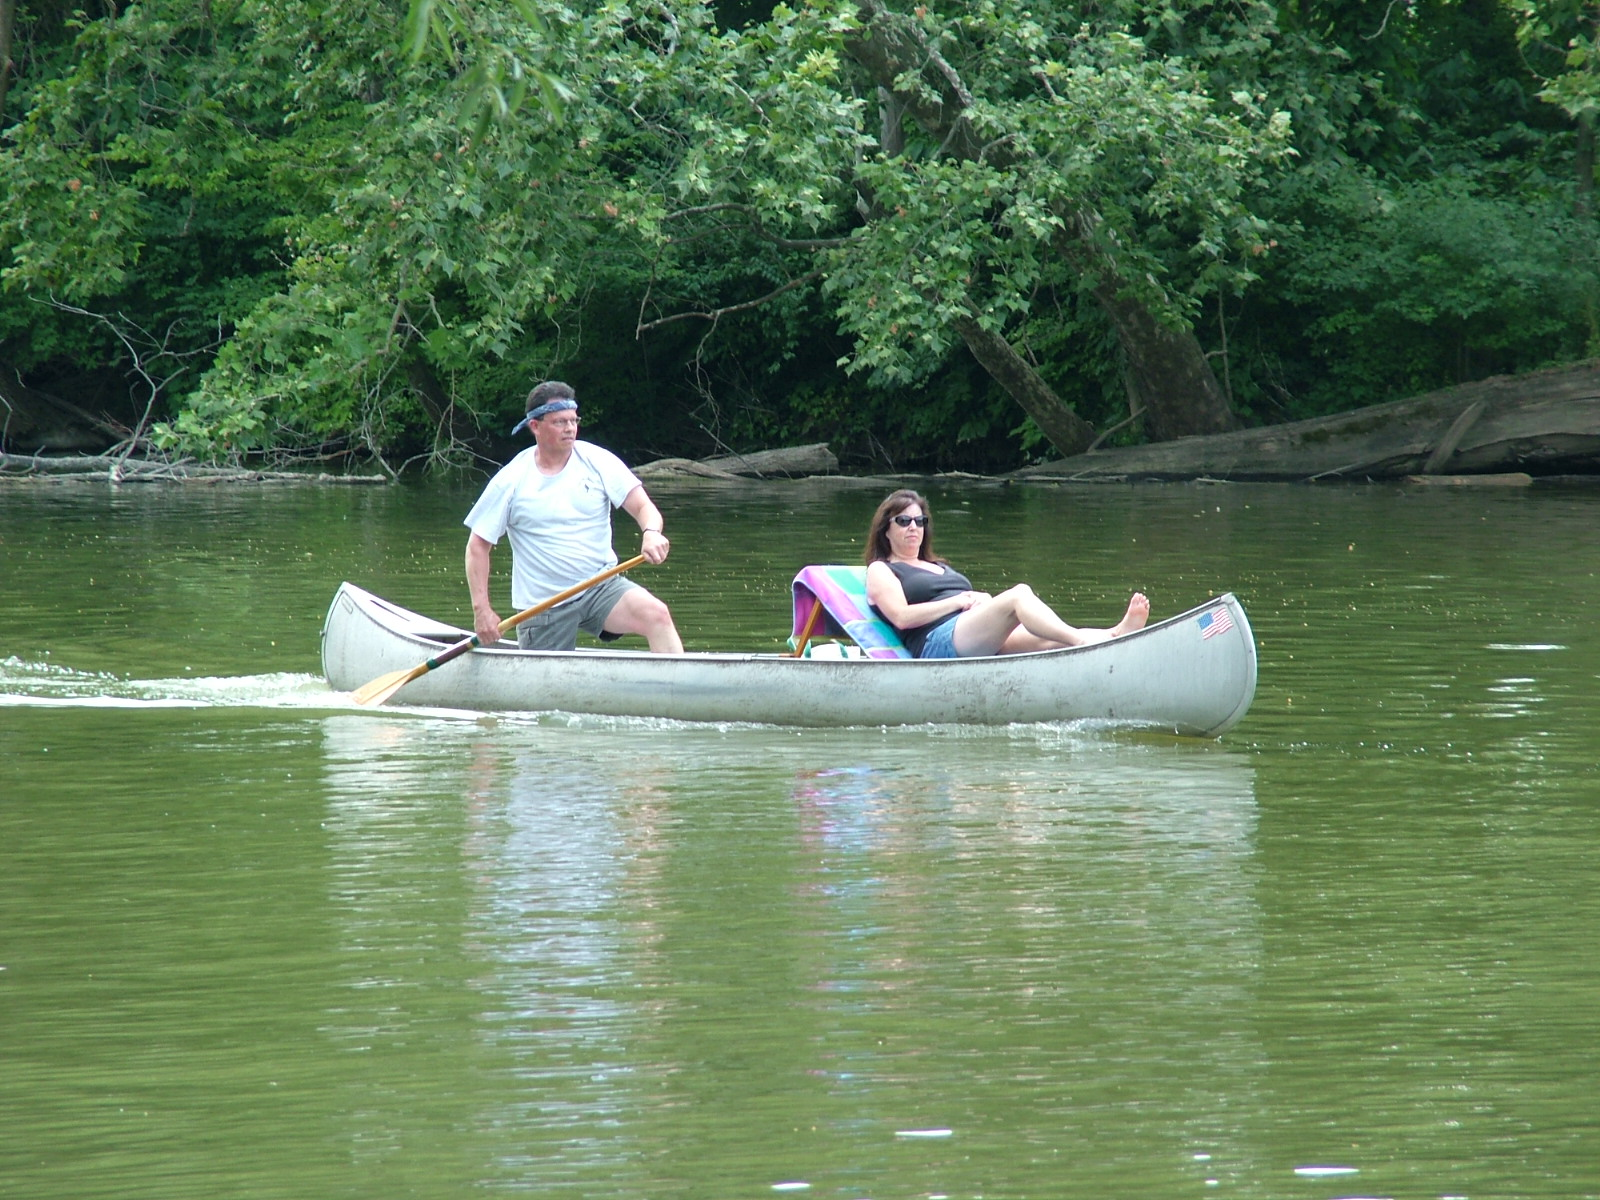 Fort Wayne, canoe, wife, husband, paddling, high knee, marriage, partners